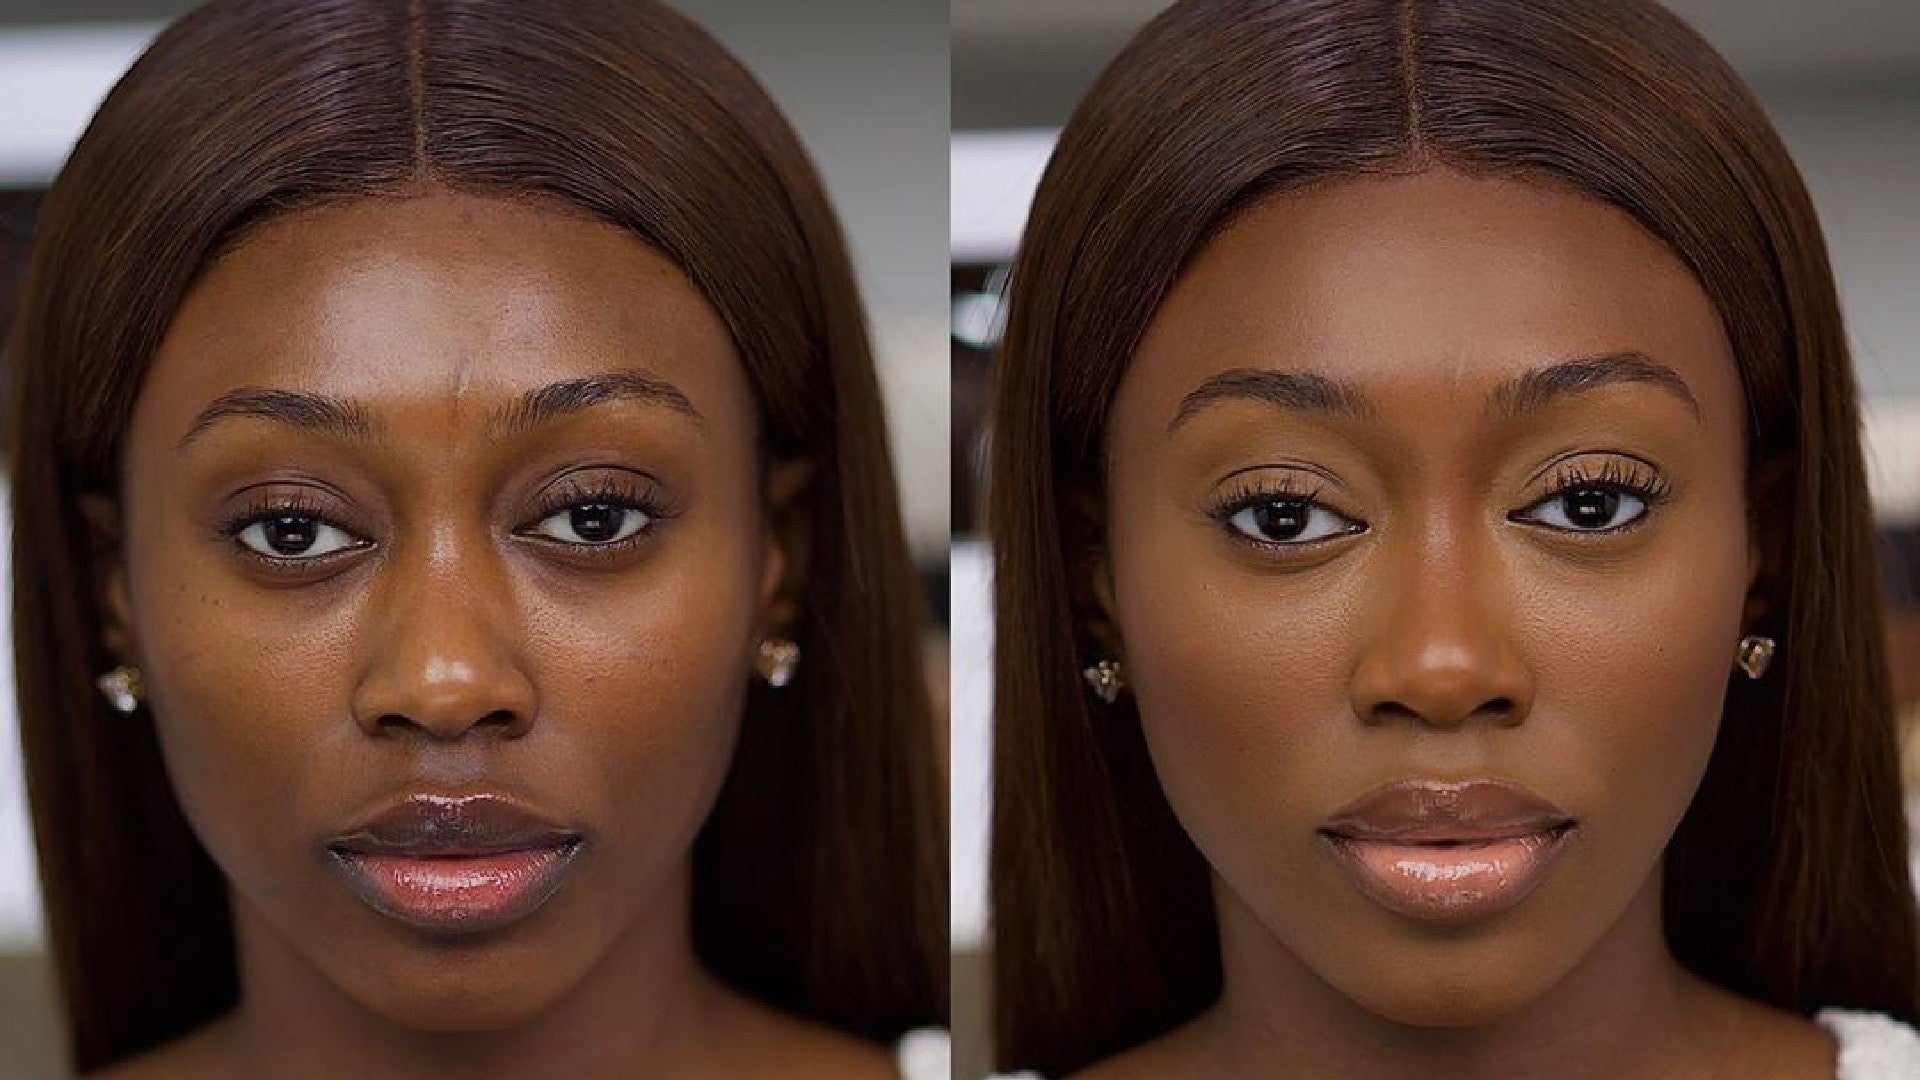 5 Minute Makeup For Work From Home